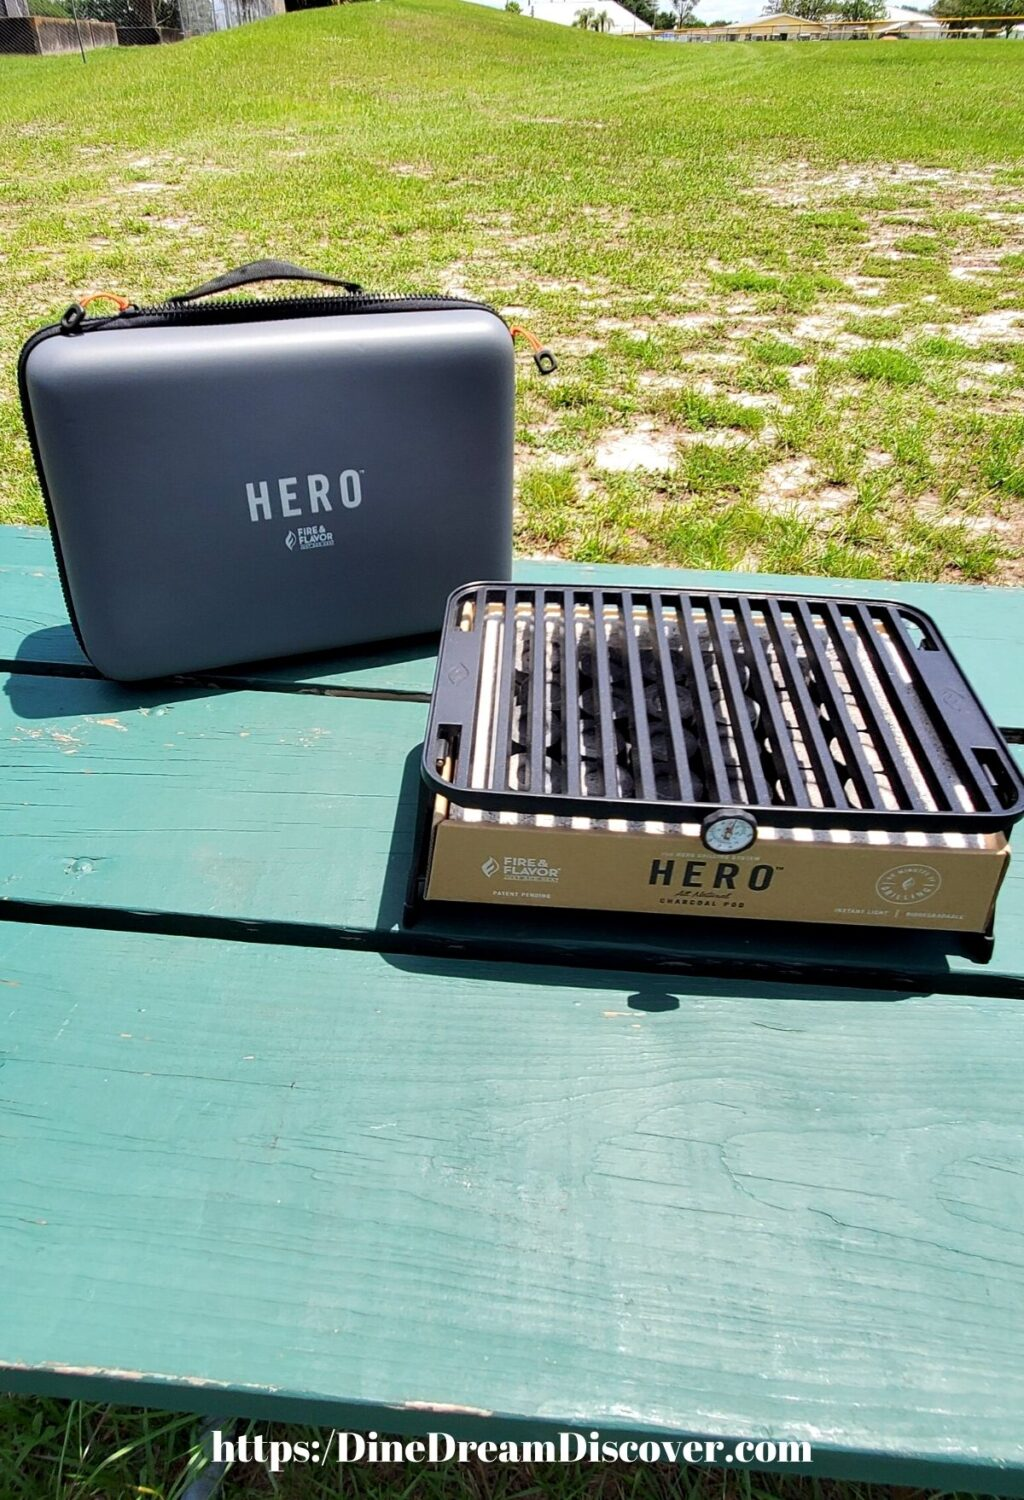 Fire and Flavor HERO Grill Portable Grill